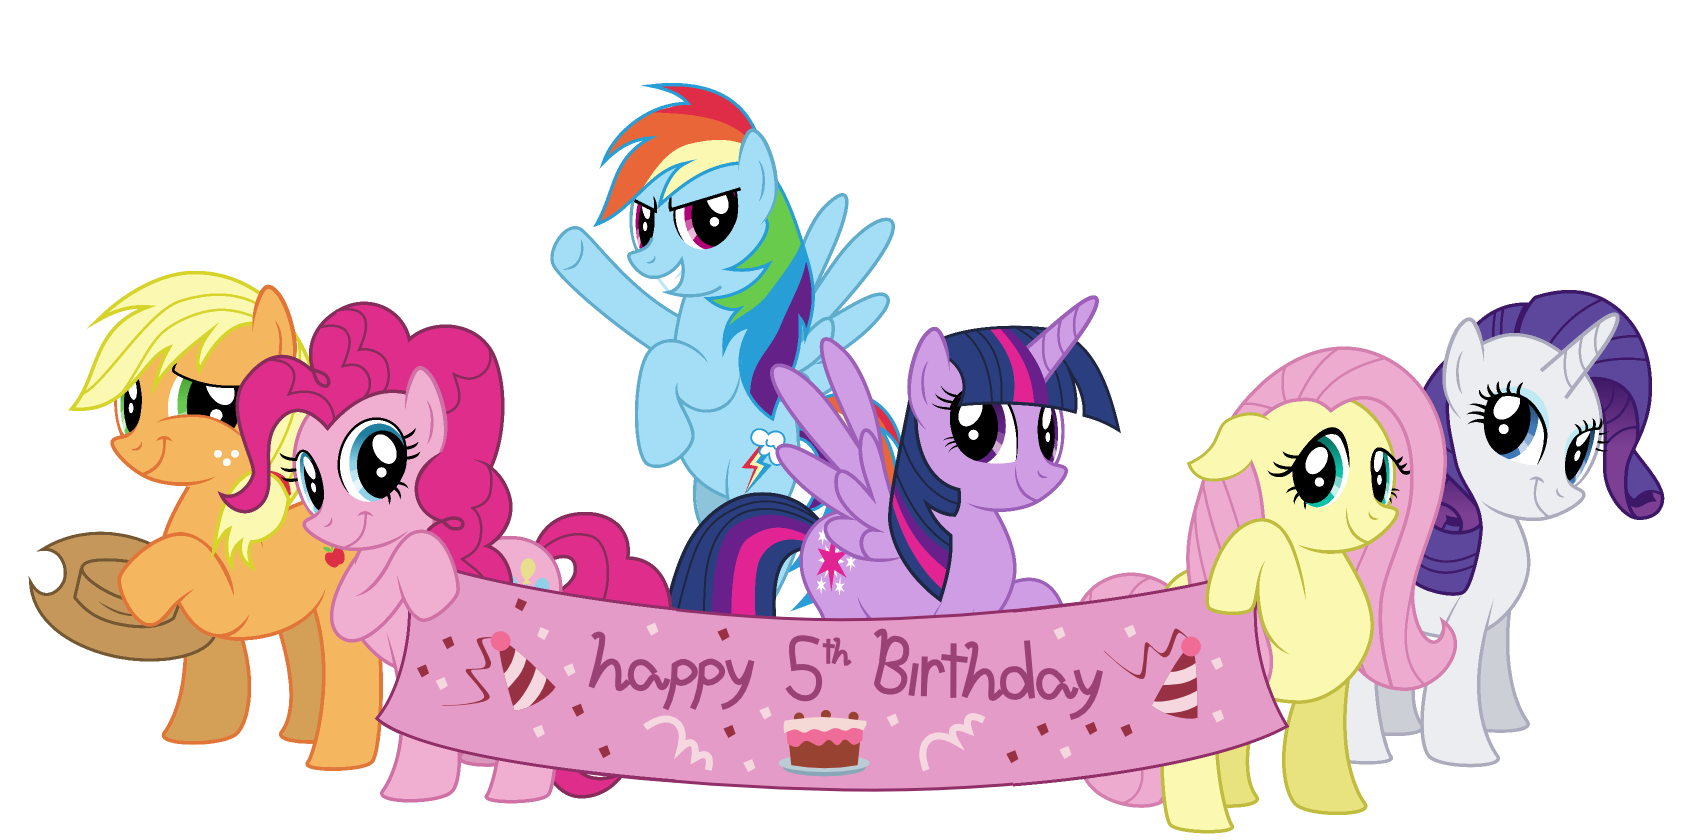 Little Pony Pinkie Pie Greeting Note Birthday PNG Image